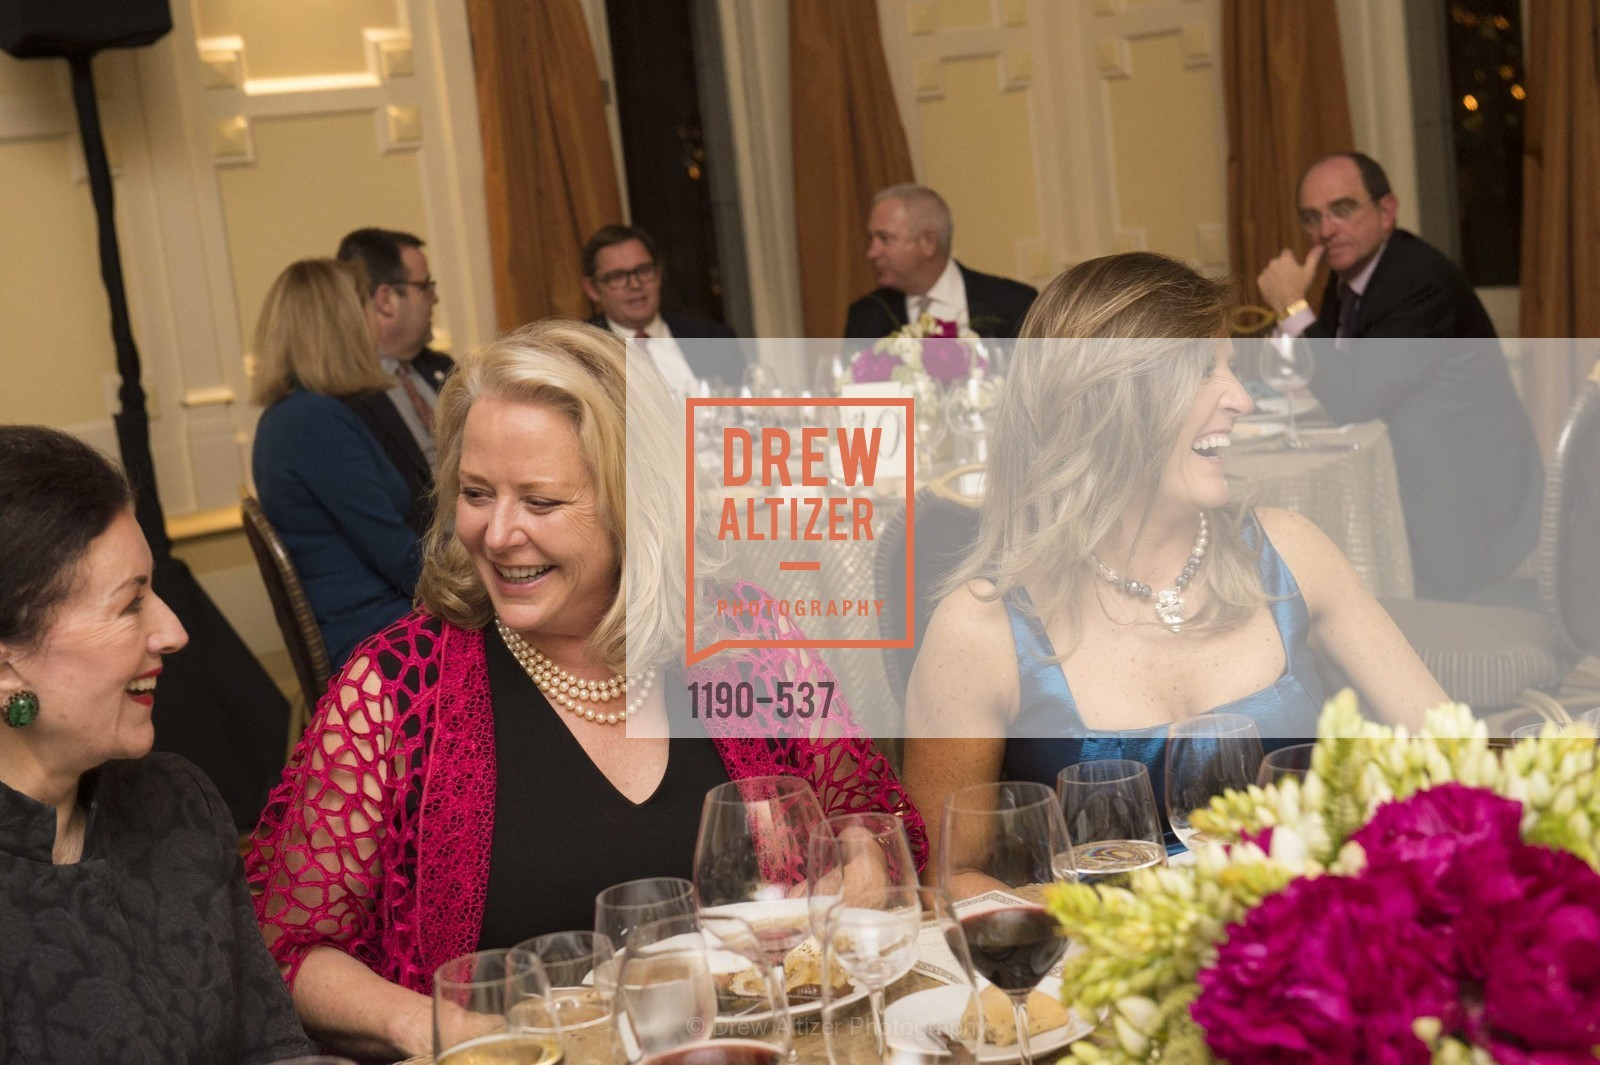 Nancy Oakes, Fabiola Gascon, TOP OF THE MARK'S 75TH Anniversary Party, US, November 6th, 2014,Drew Altizer, Drew Altizer Photography, full-service agency, private events, San Francisco photographer, photographer california